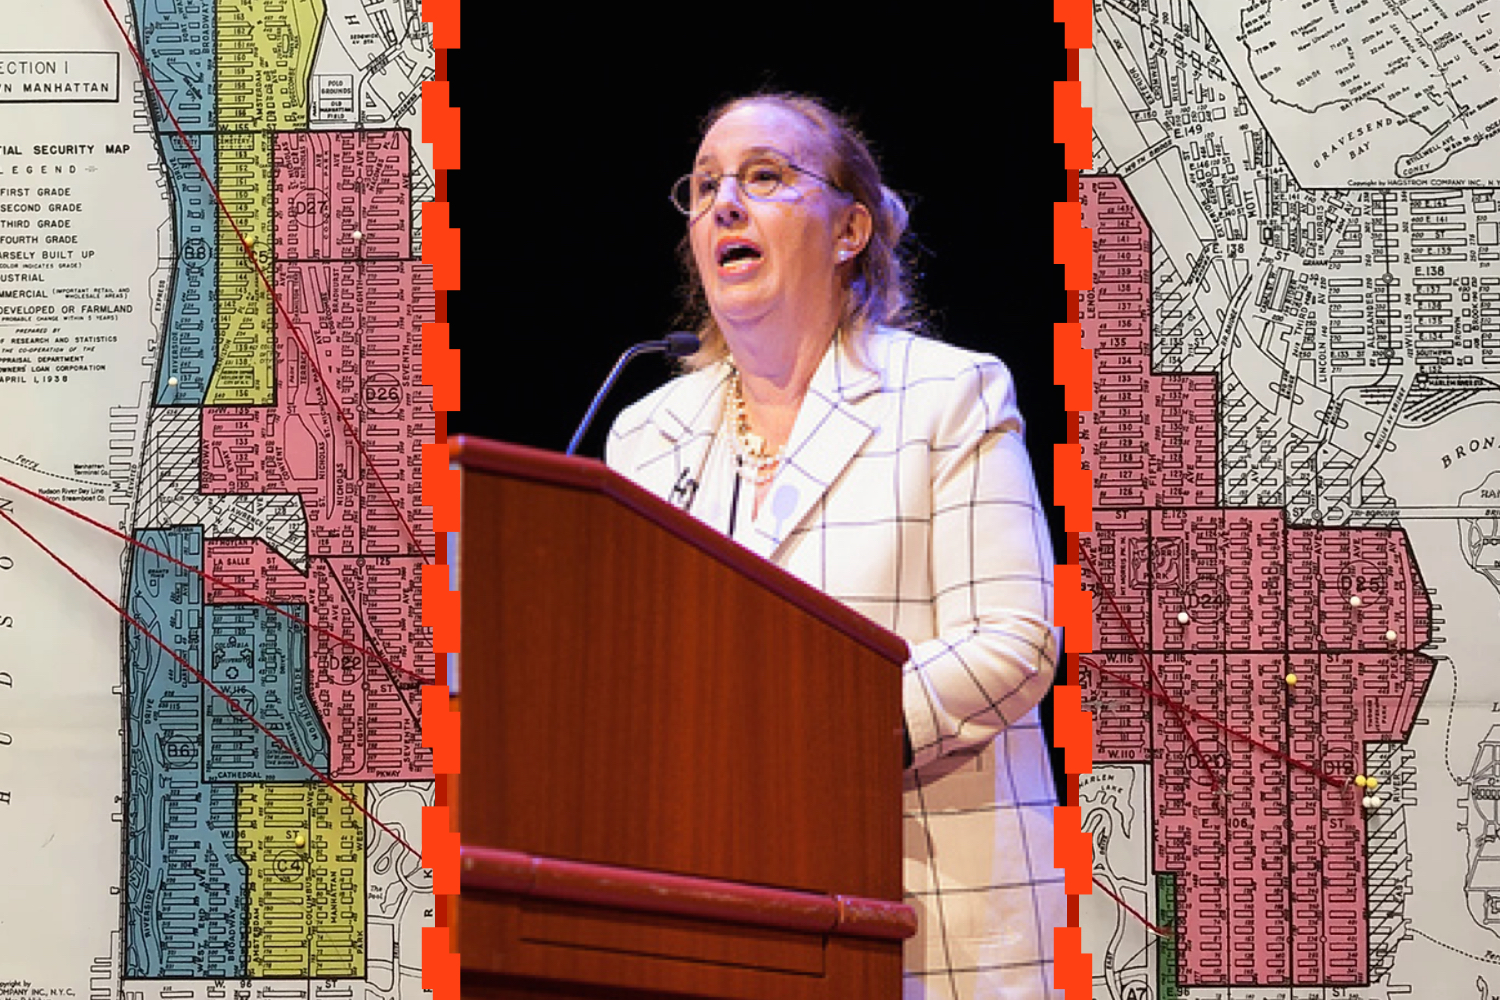 Gale Brewer, image from Manhattan Borough President's Office, and redlining map of Harlem